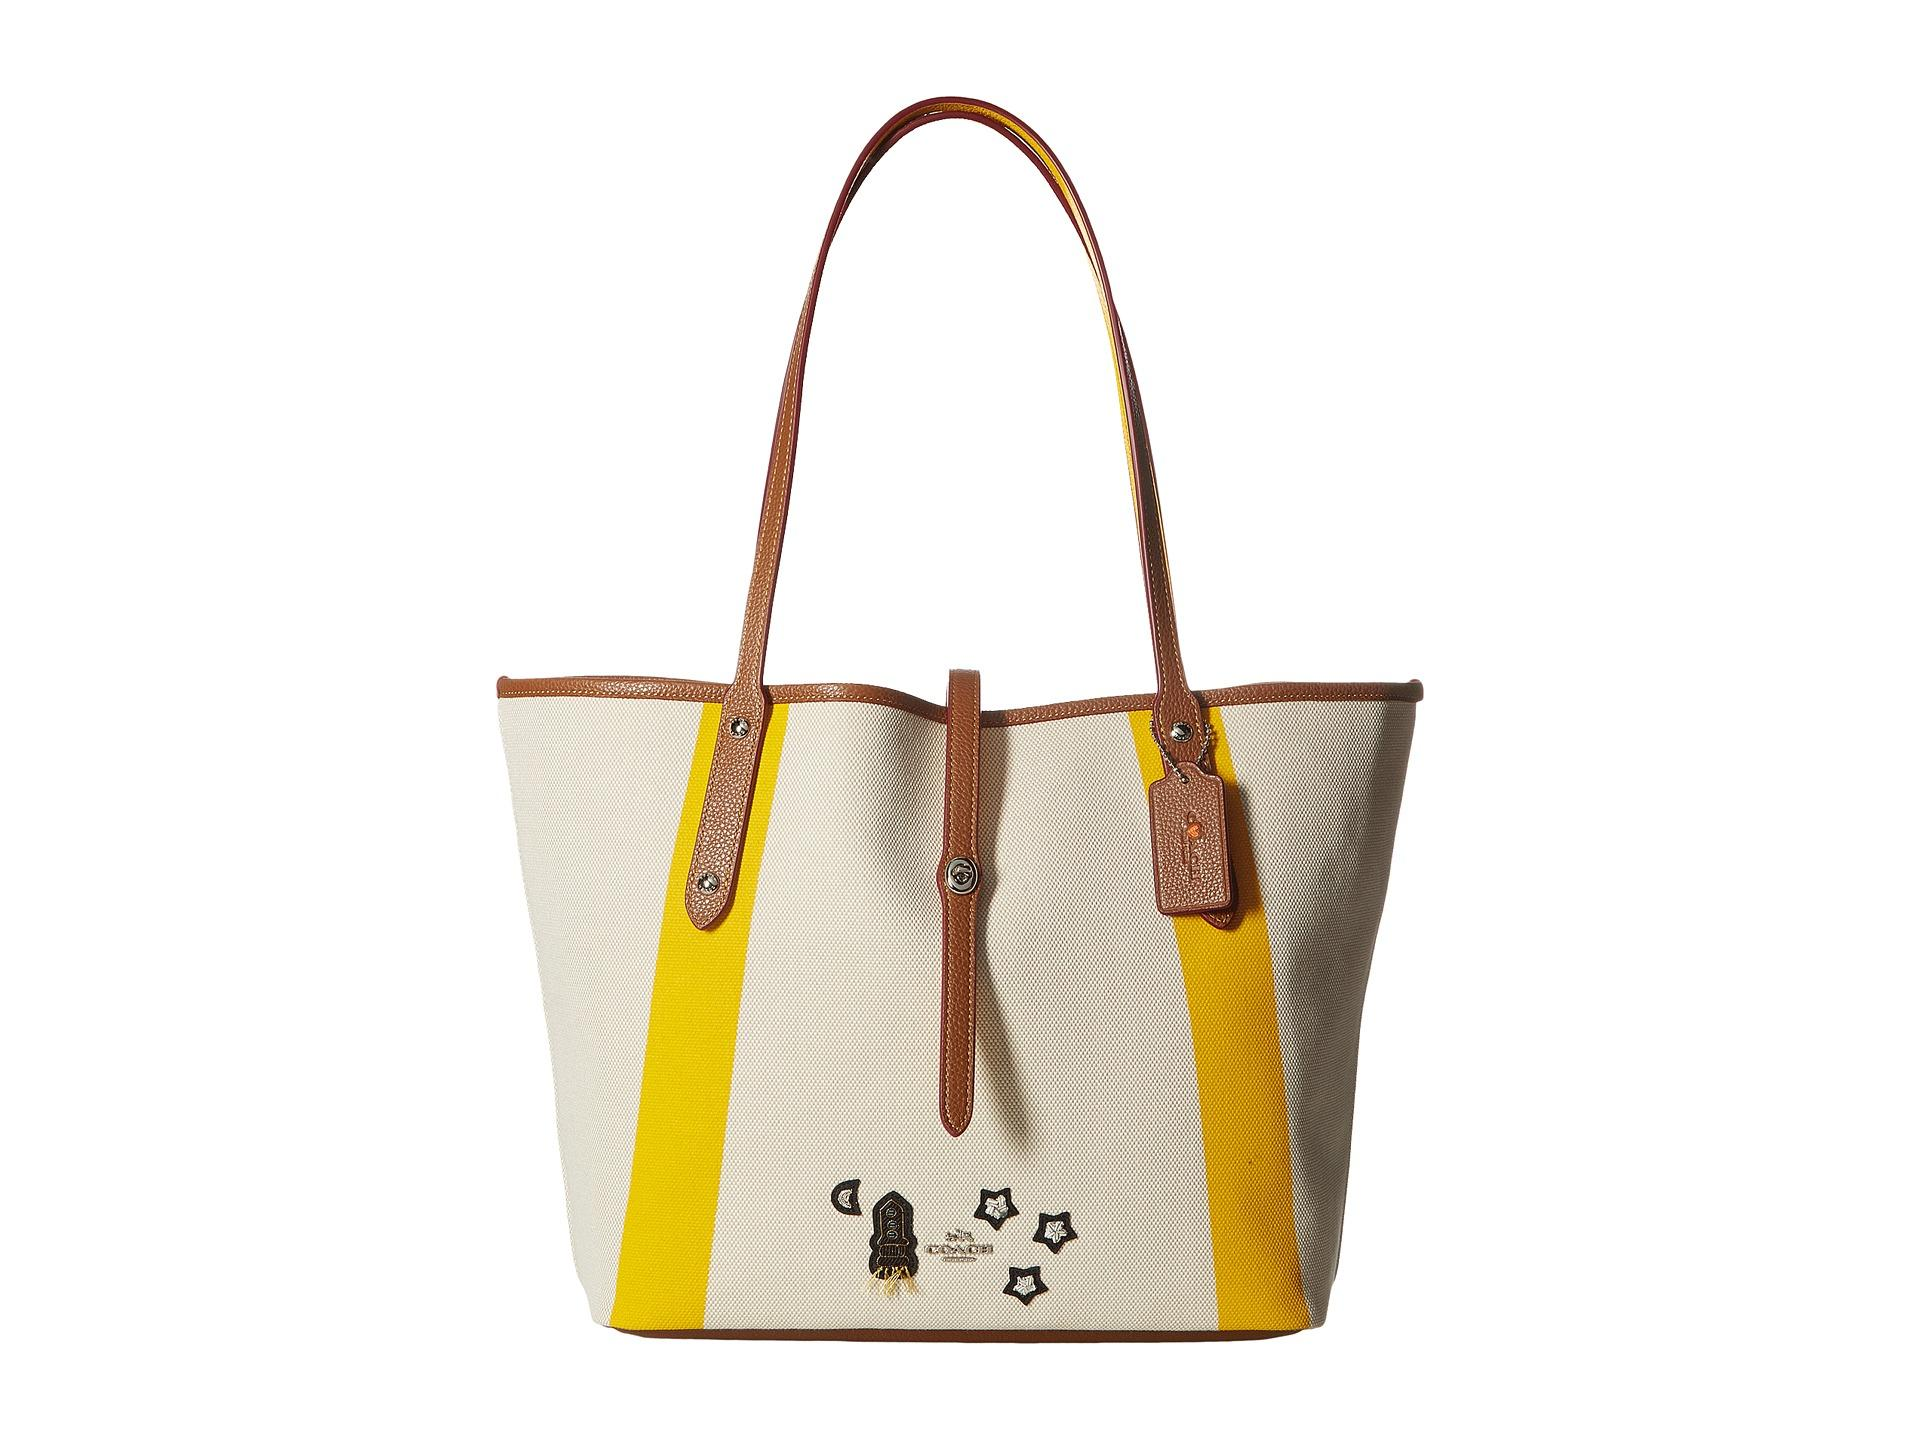 839e9d1a235e5 Lyst - COACH Souvenir Embroidery Detail Market Tote in Yellow